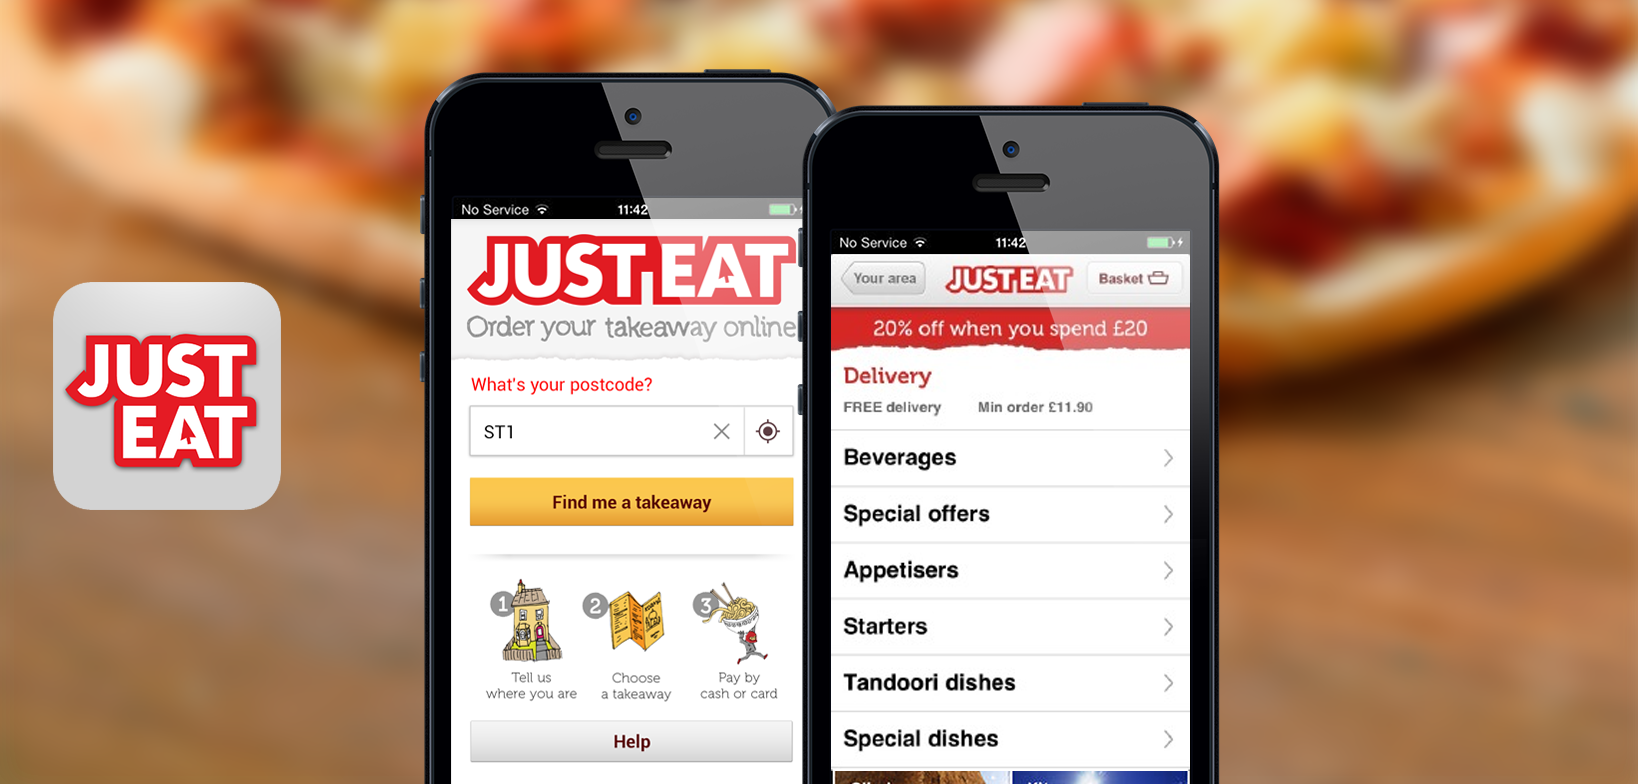 Just Eat Acquires Hungryhouse and SkipTheDishes for £266m